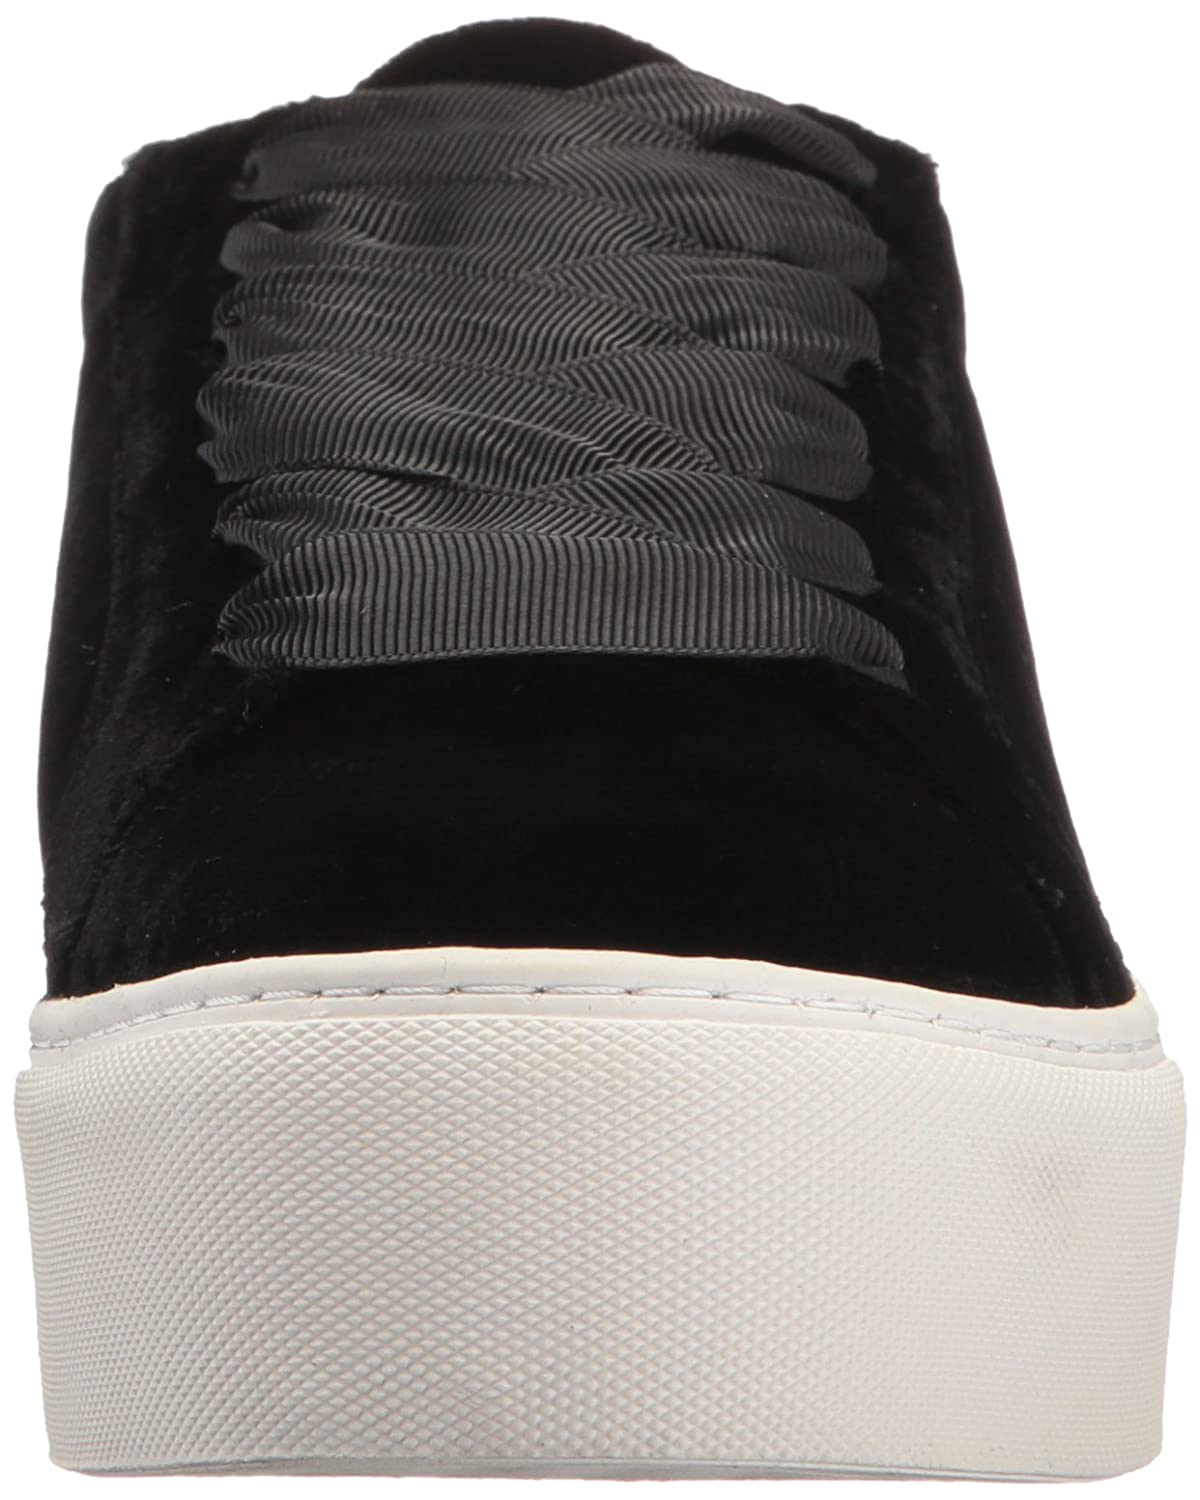 c00344524d0d ... Kenneth Cole New York Women s Abbey Platform Lace up 5.5 Velvet Fashion  Sneaker B071L1B9NY 5.5 up ...